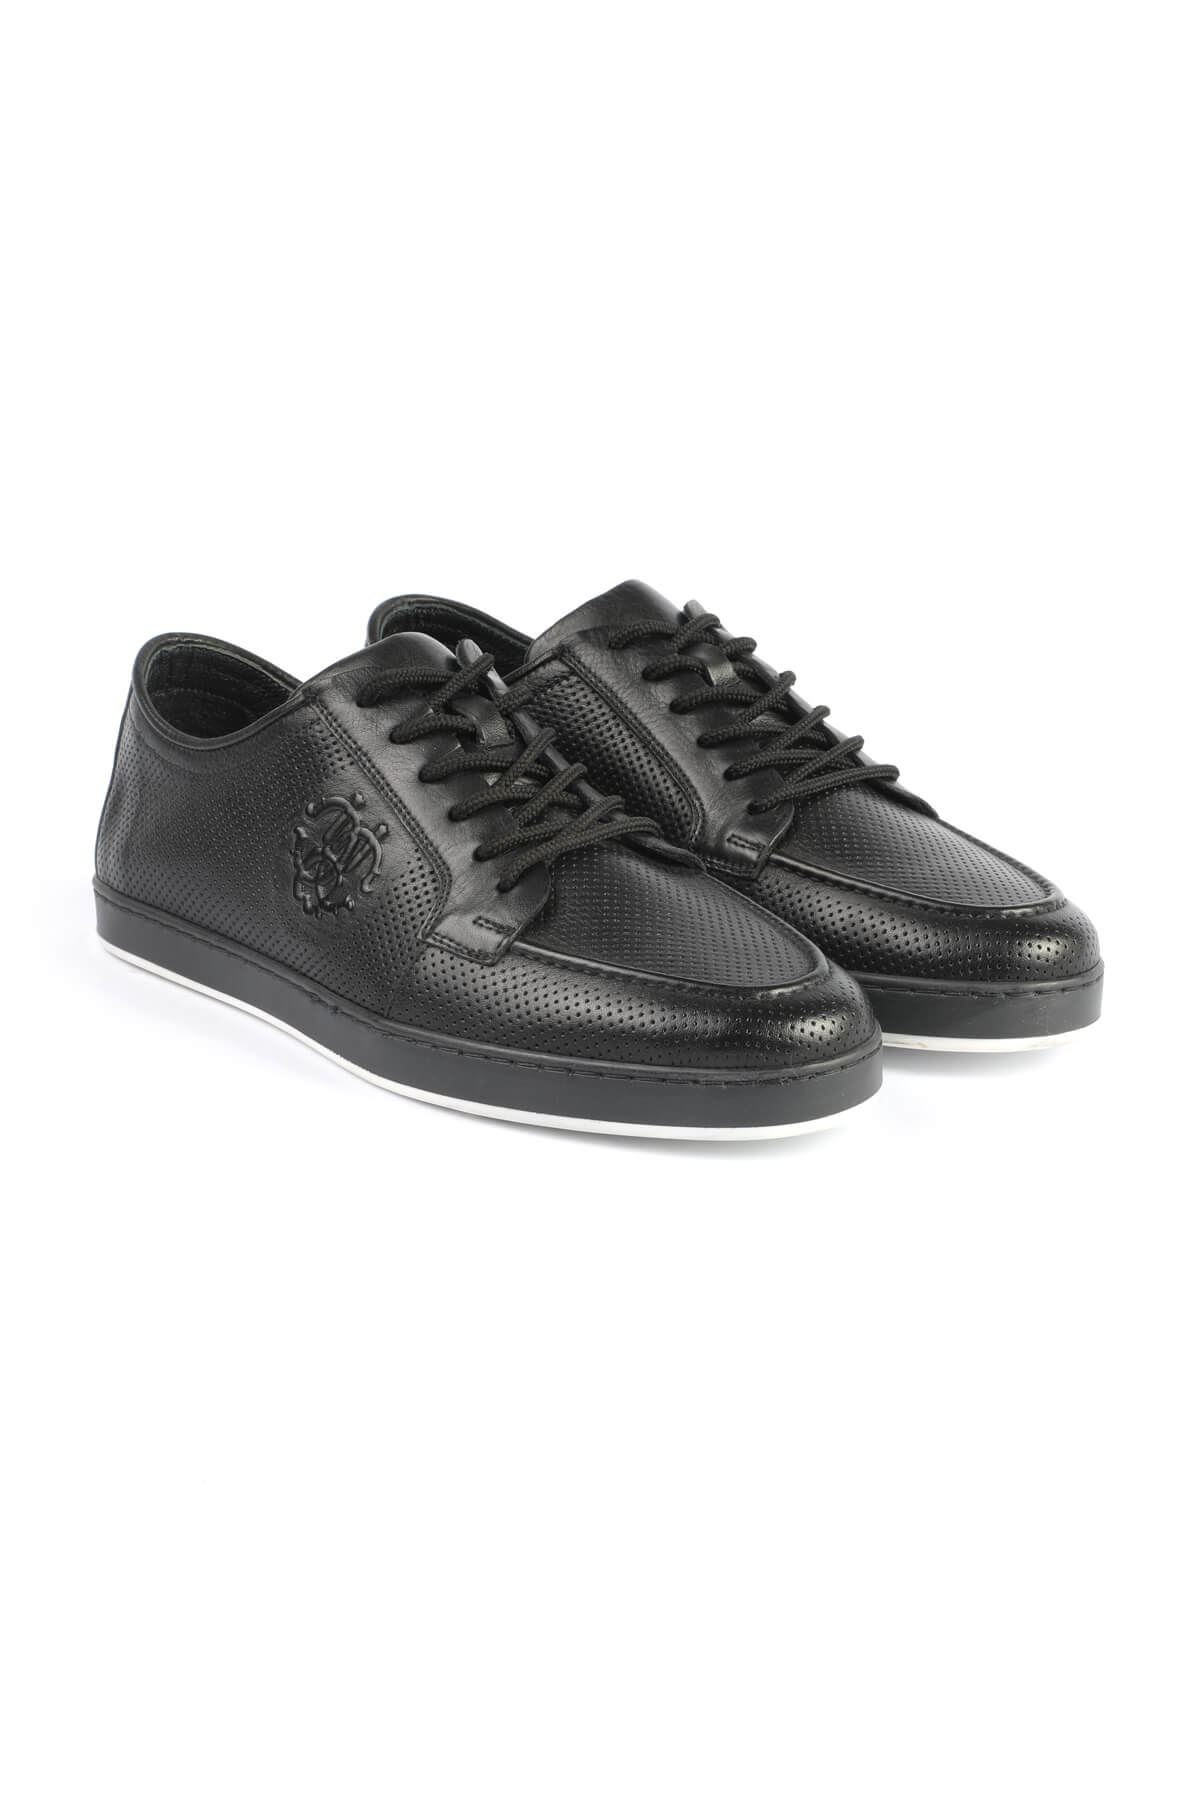 Libero 3200 Black Sneaker Shoes